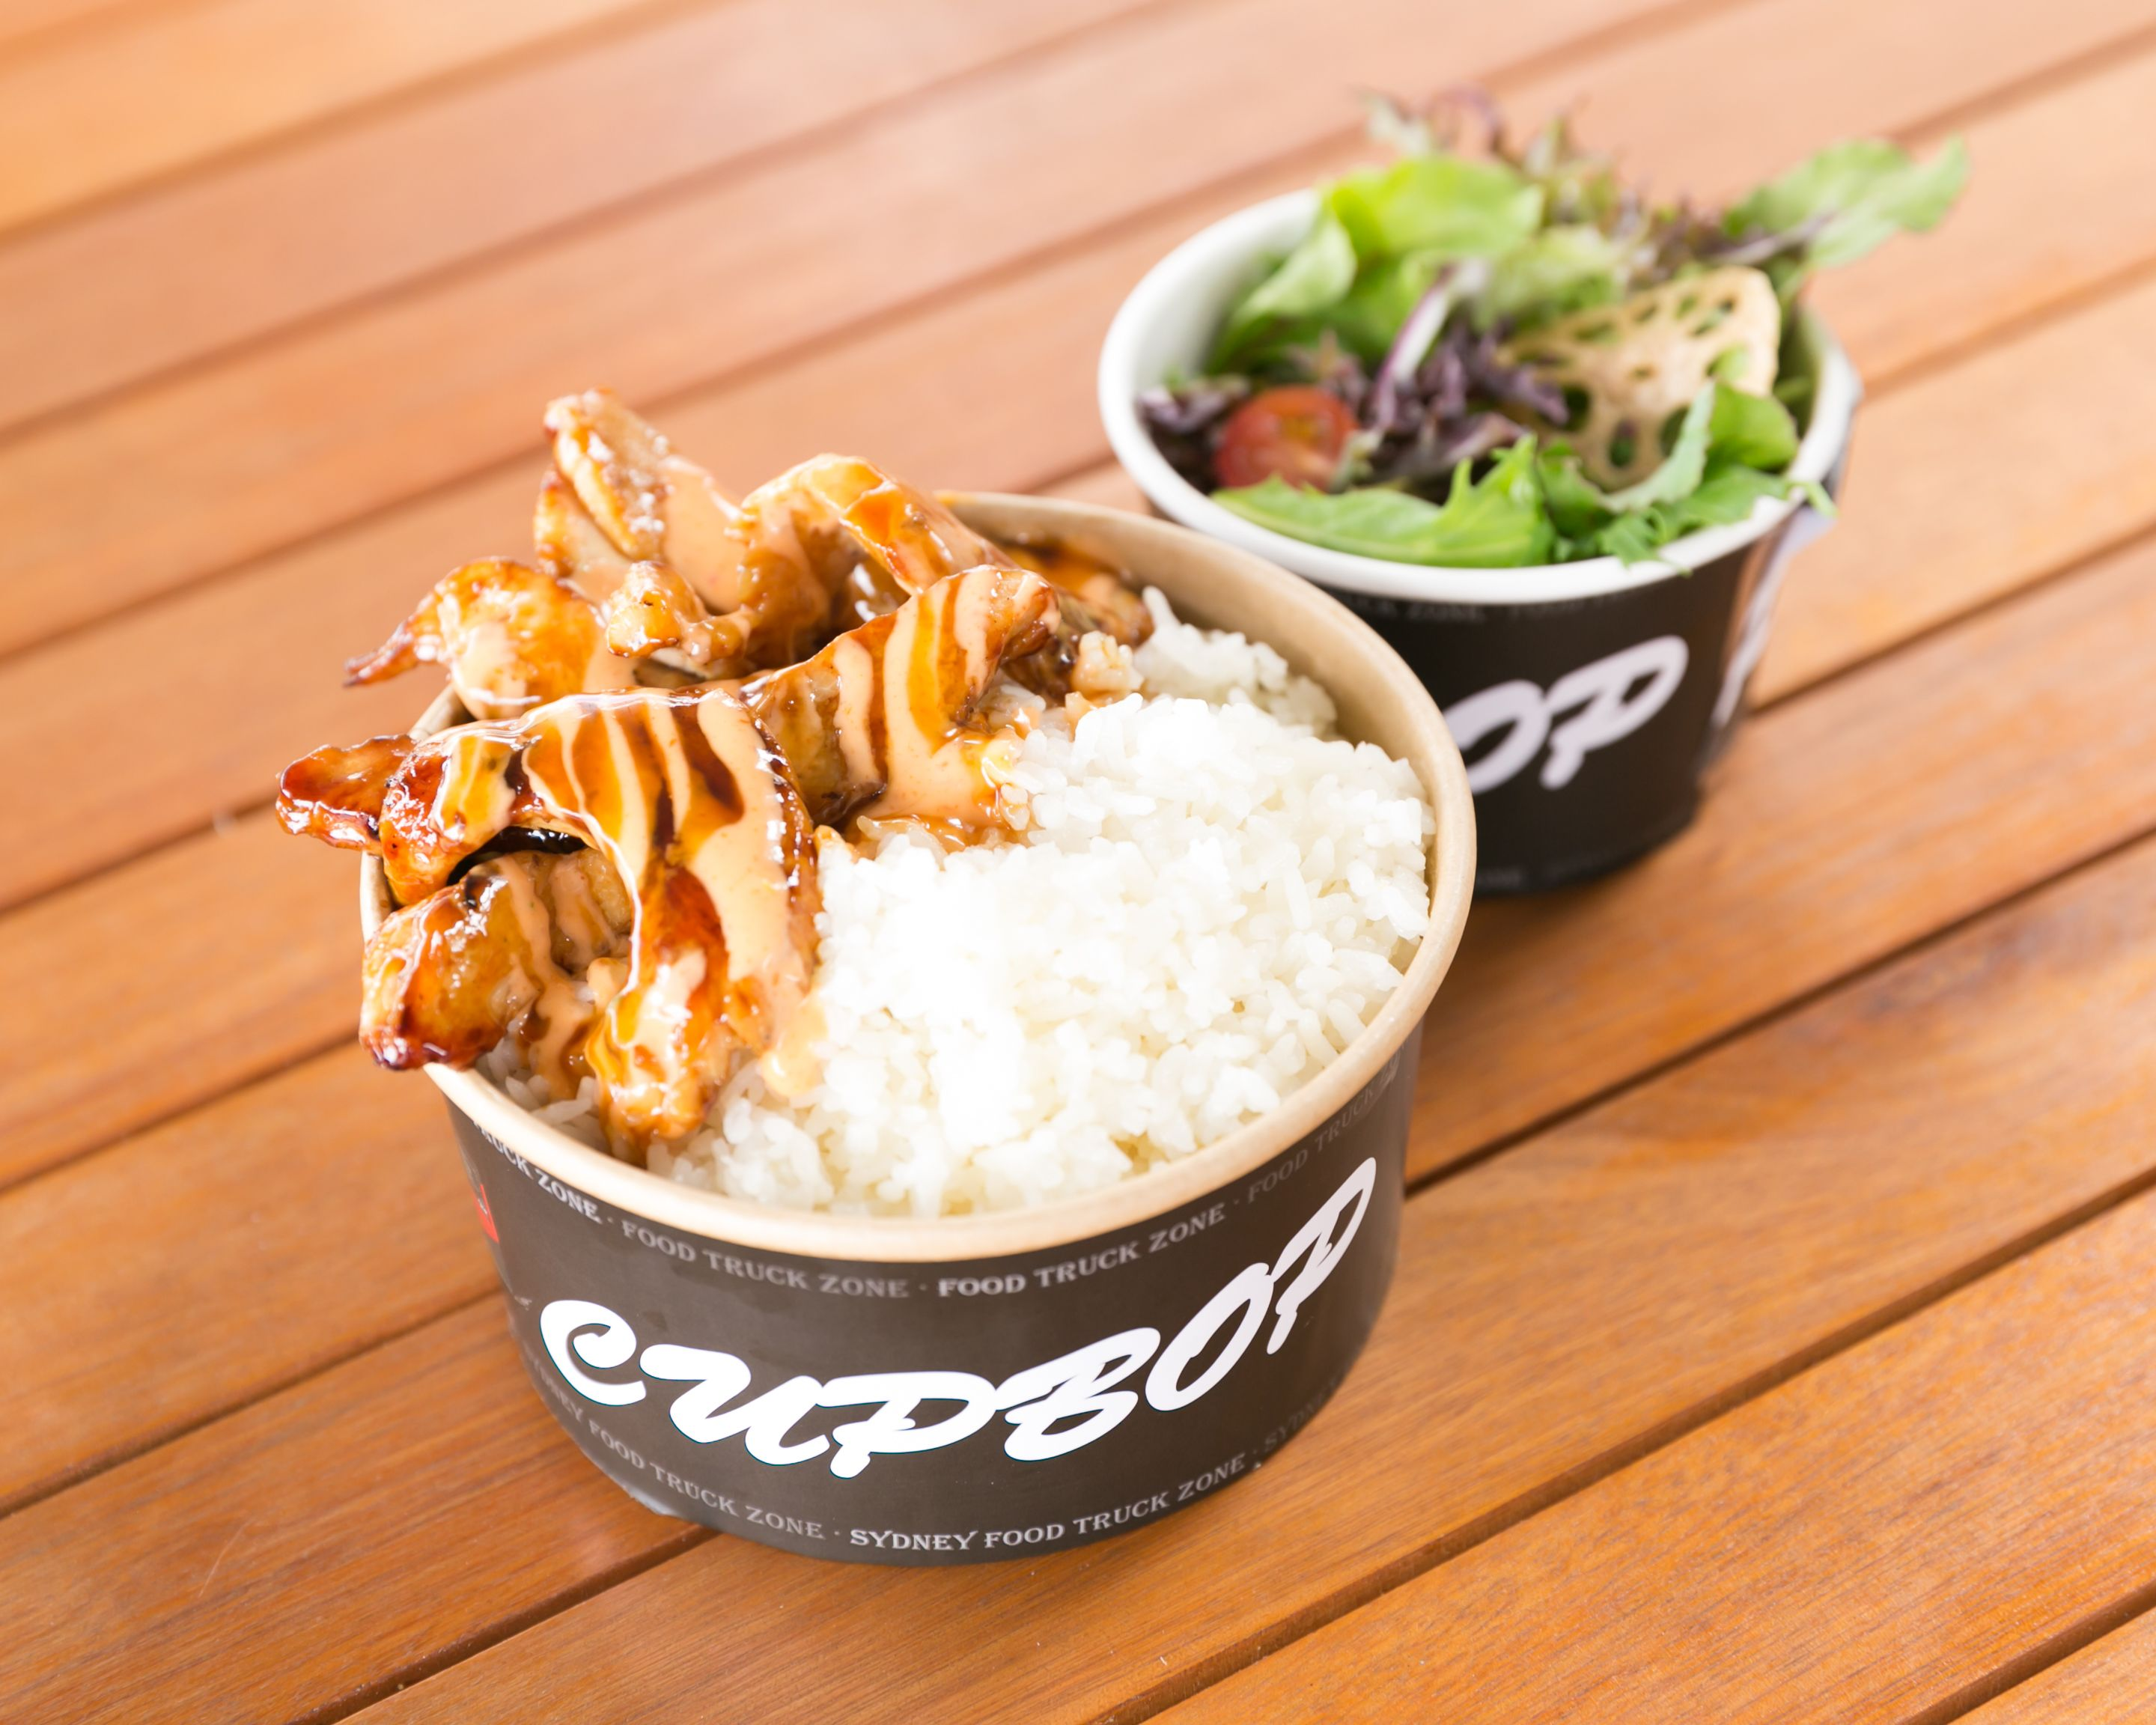 Teriyaki Chicken Cupbop